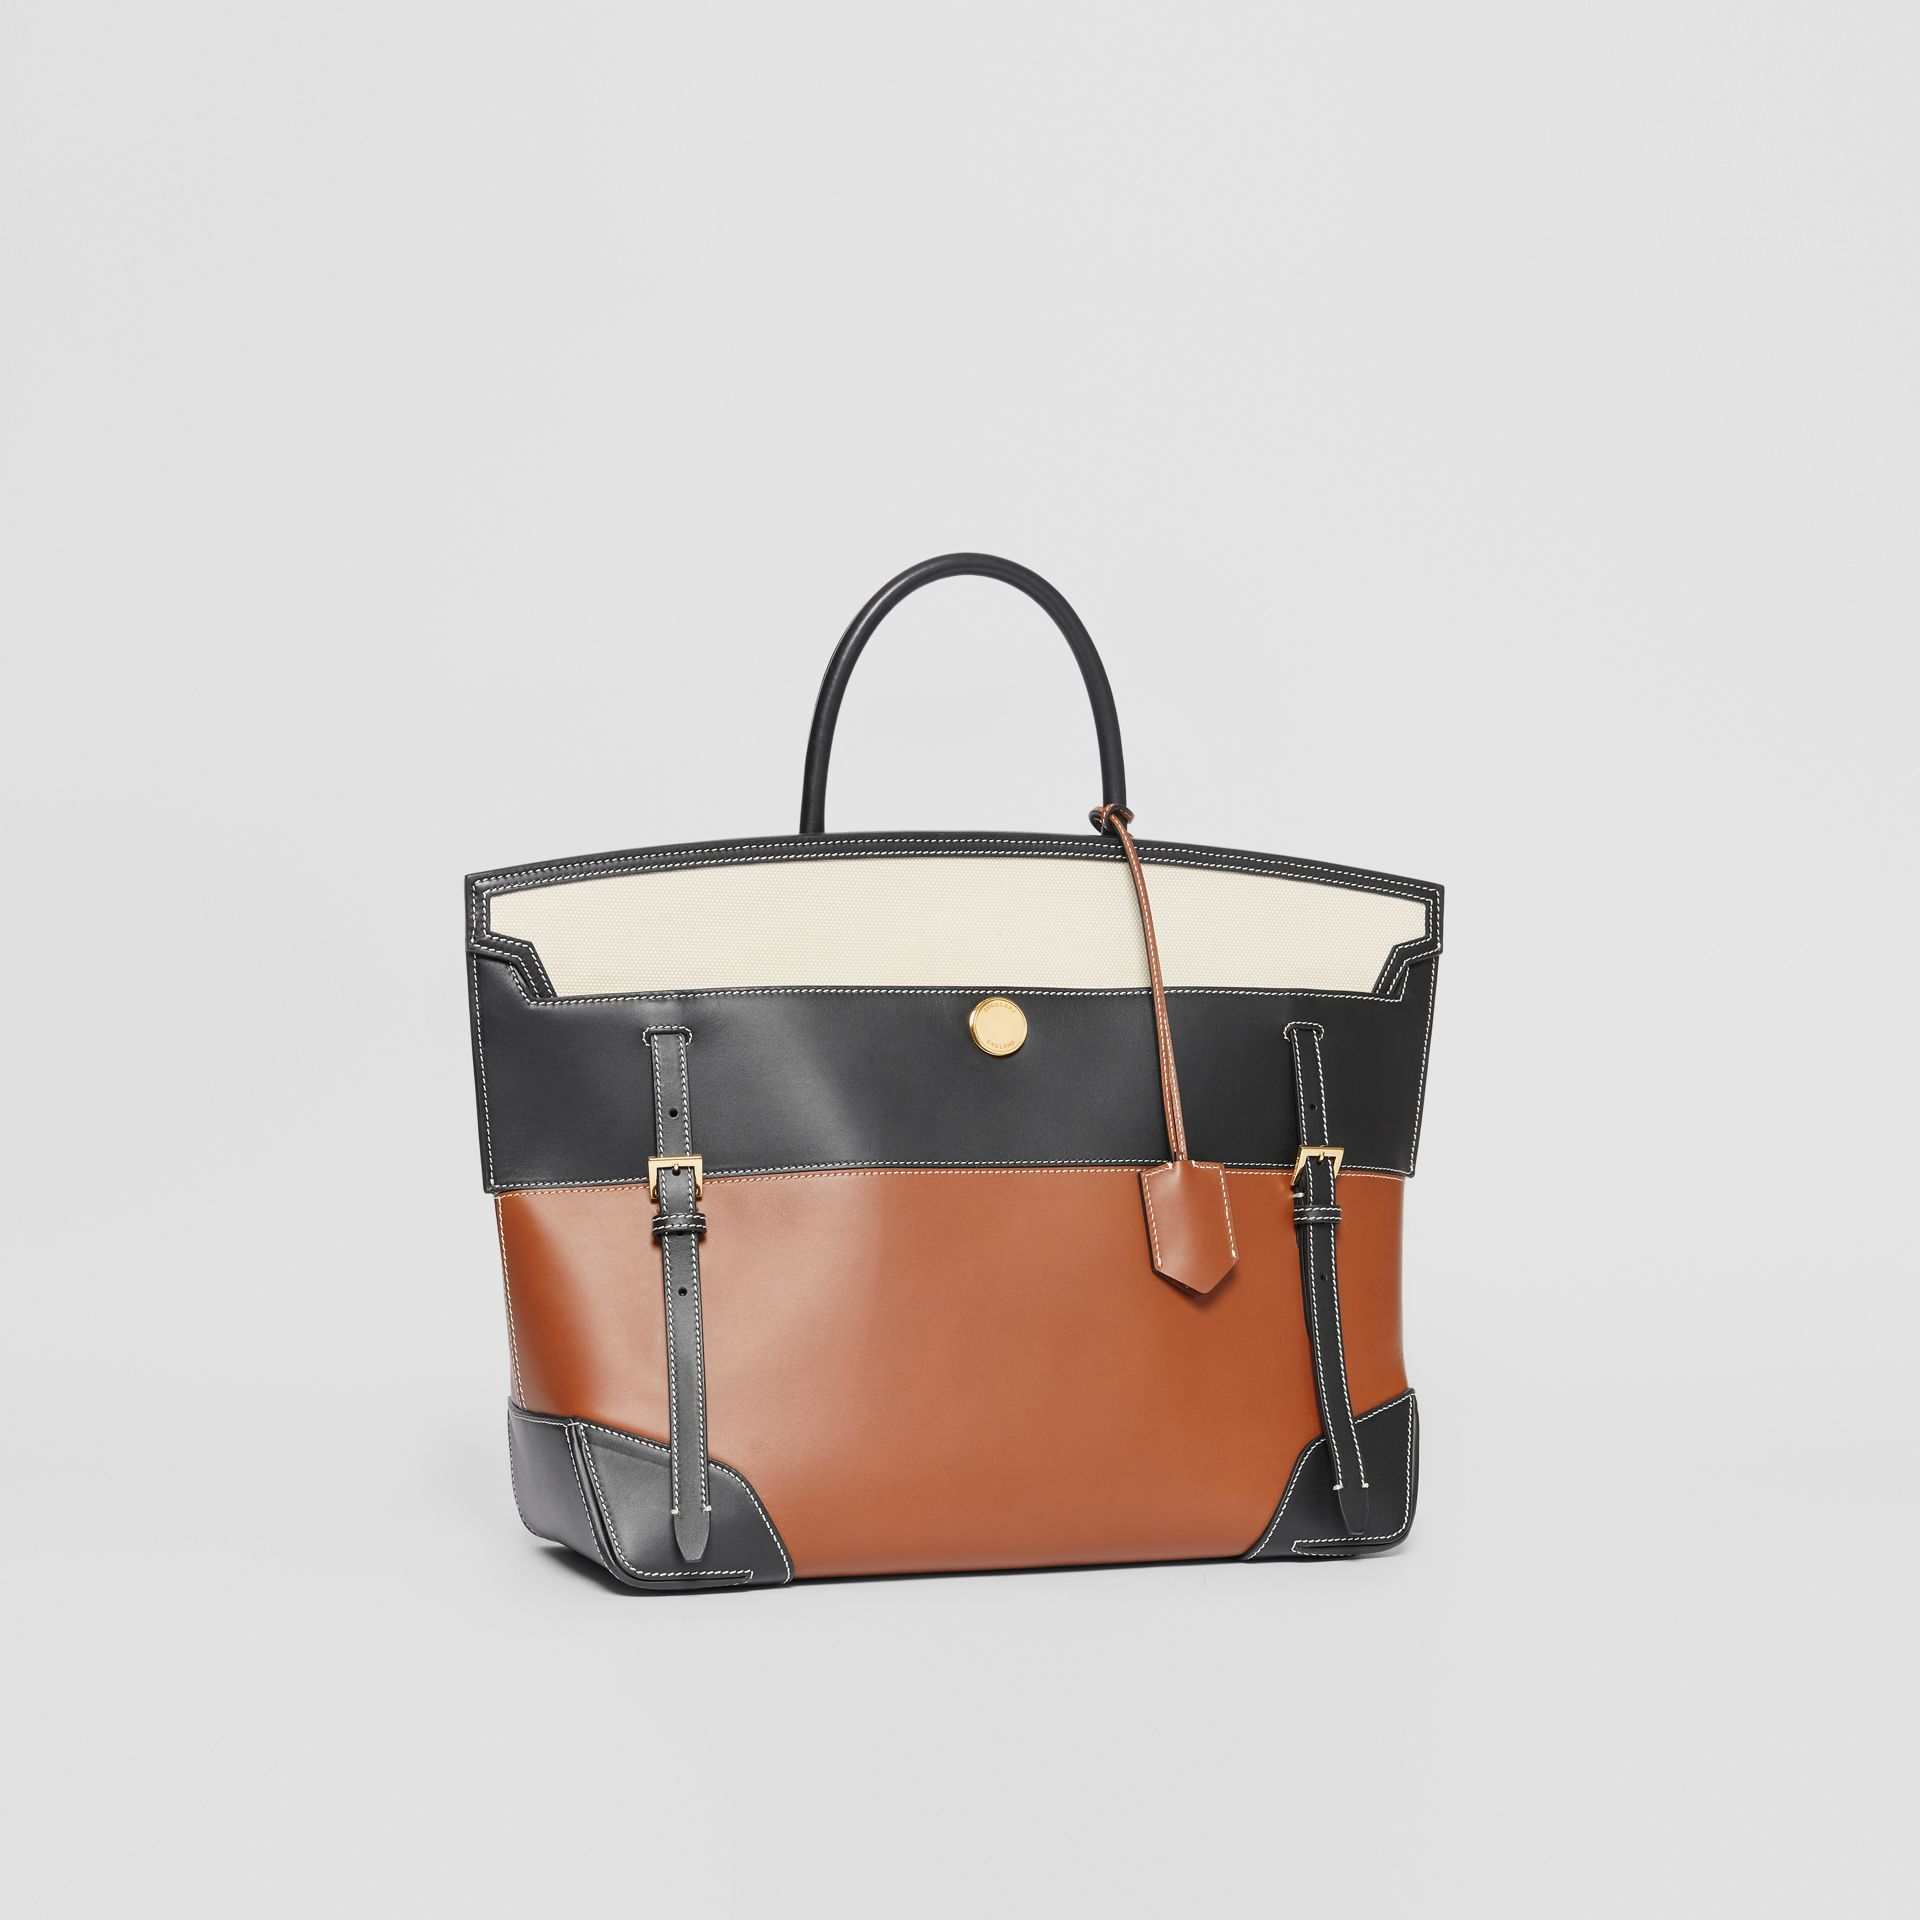 Tri-tone Leather and Canvas Society Top Handle Bag in Tan/black - Women | Burberry - gallery image 4